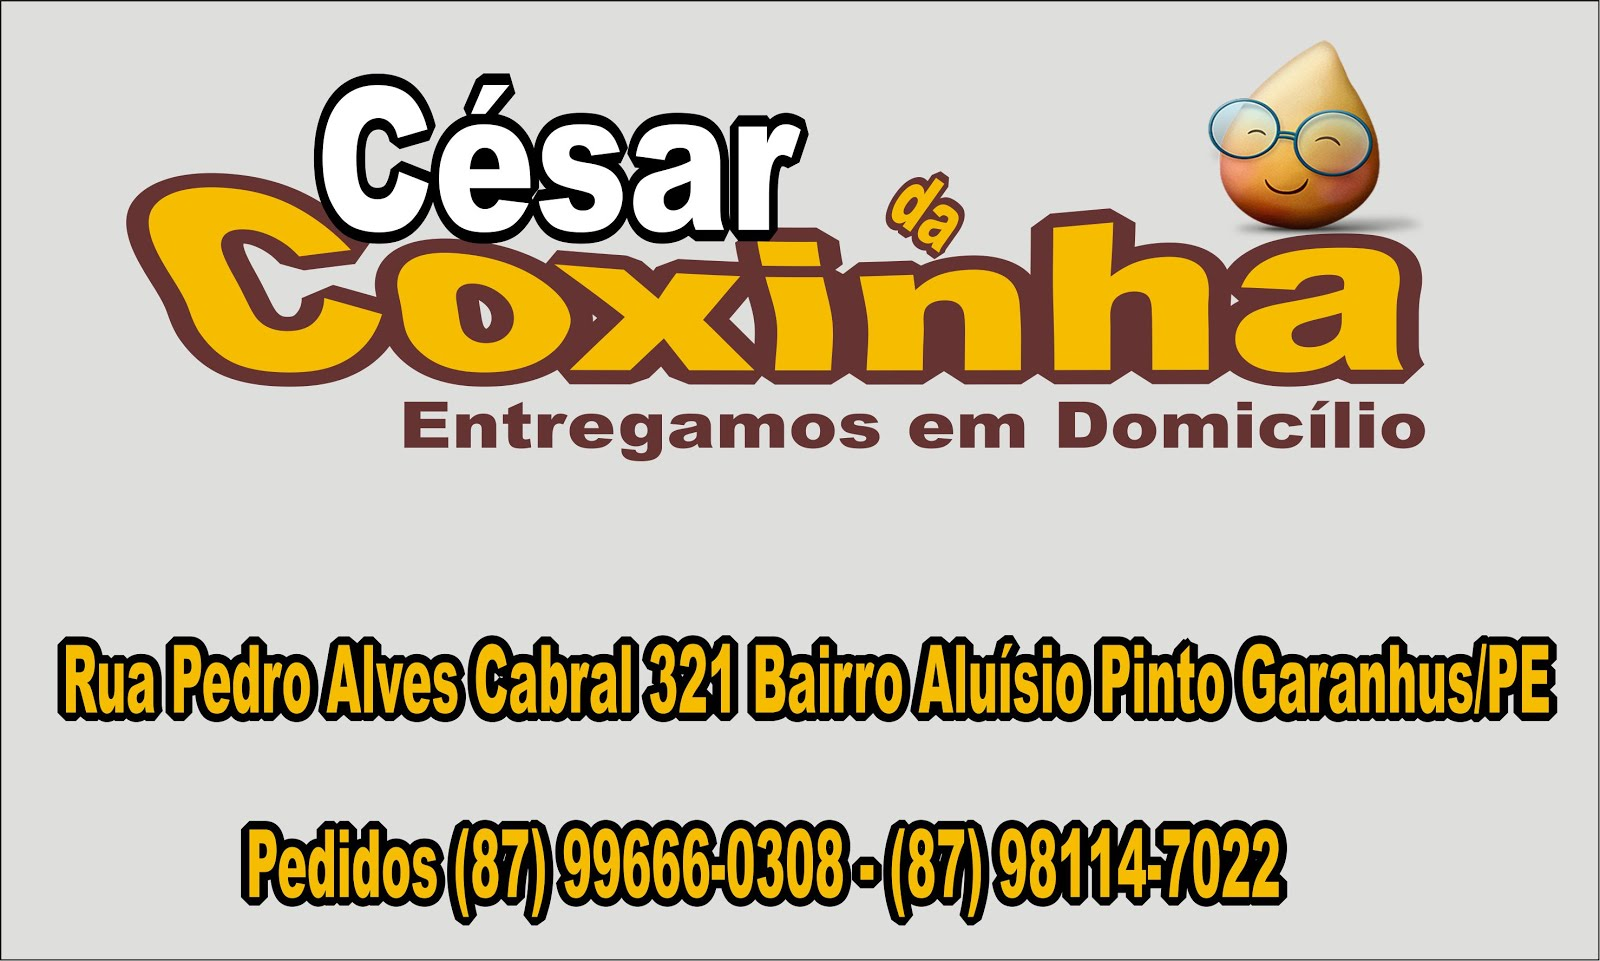 César da coxinha.